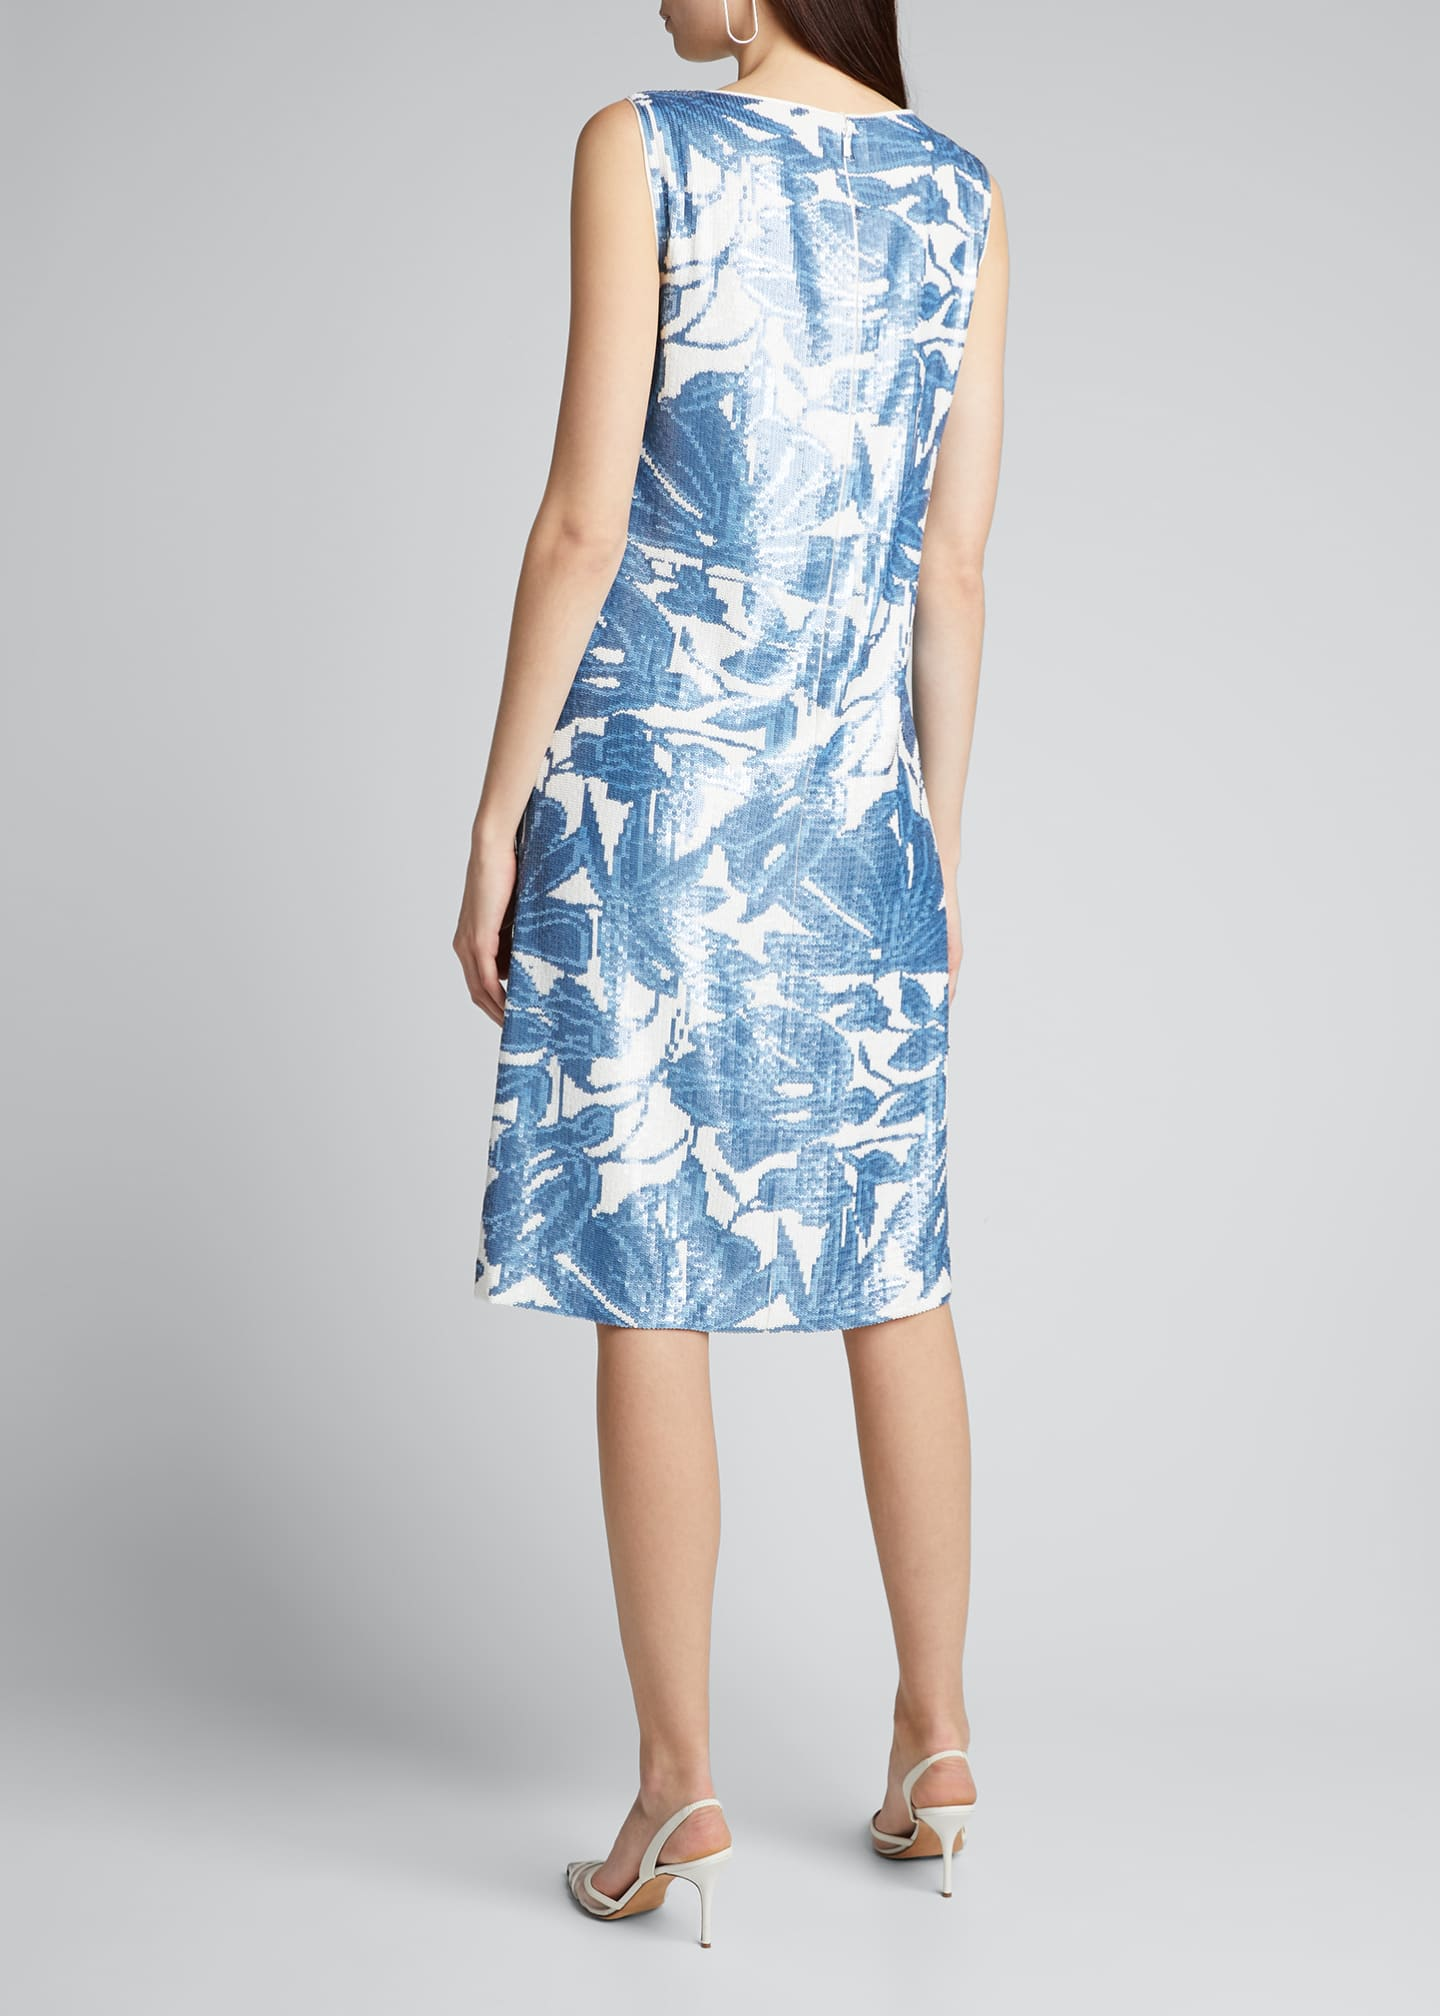 Image 2 of 5: Noah Floral Sequined Sleeveless Dress